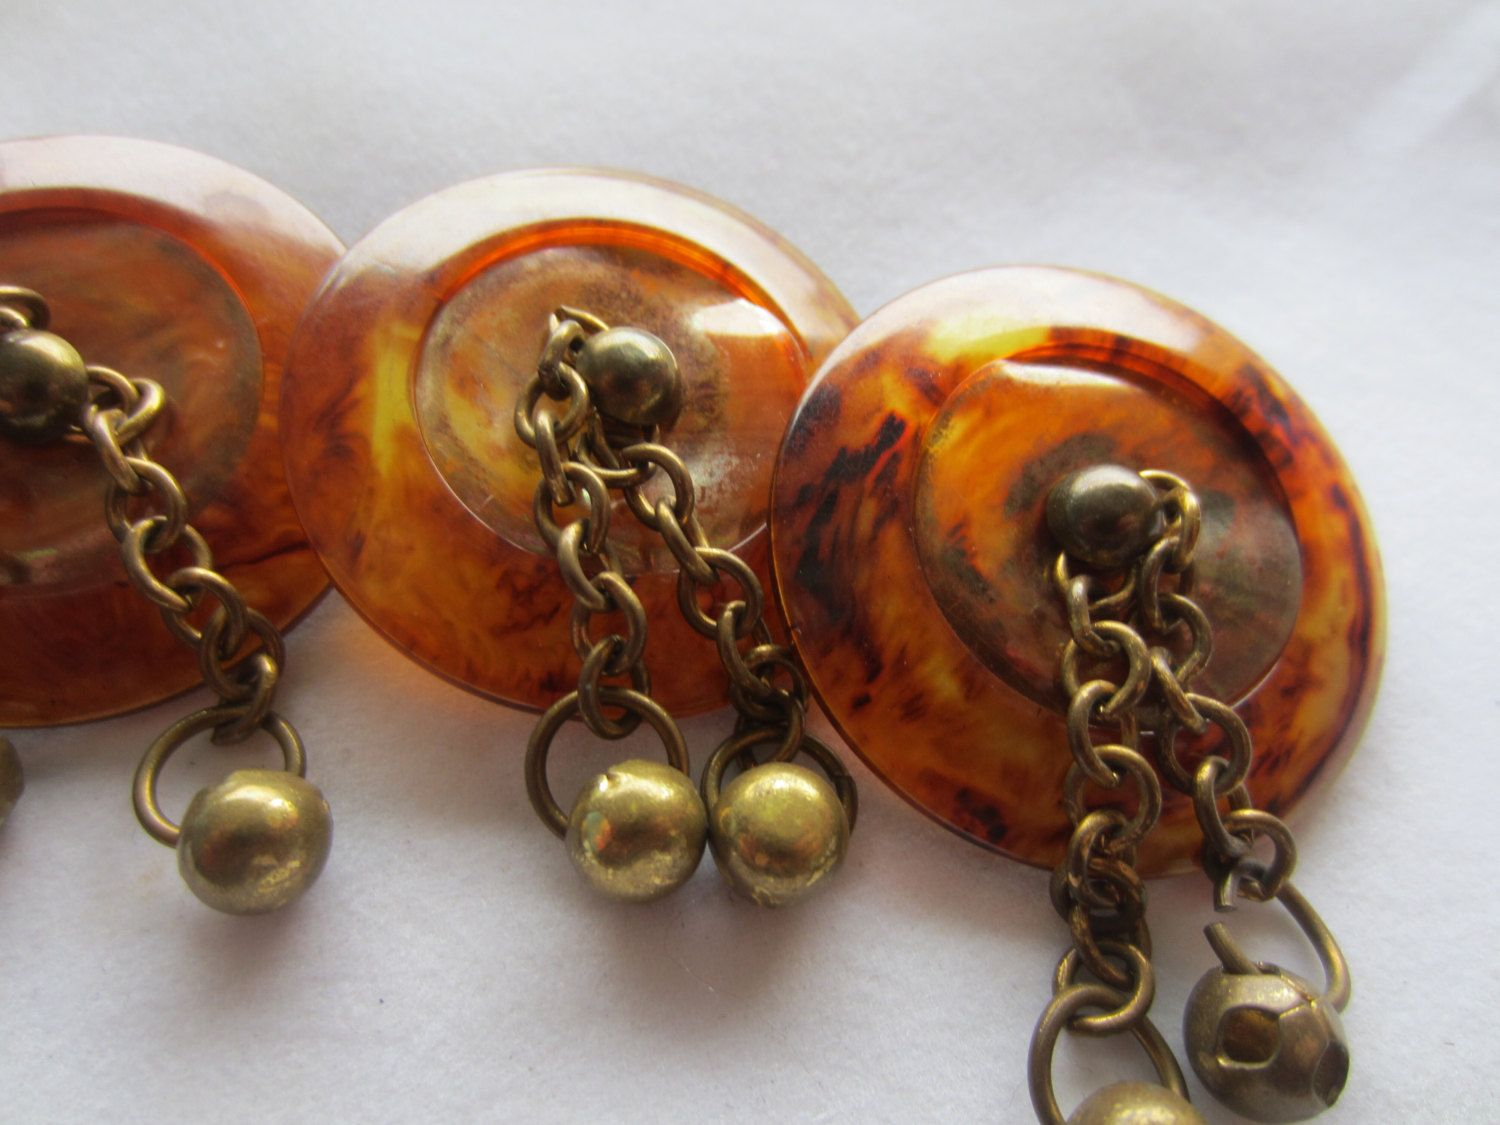 Vintage  Buttons -3 extra large matching tortoiseshell with metal chain design  (lot no dec 518) by pillowtalkswf on Etsy